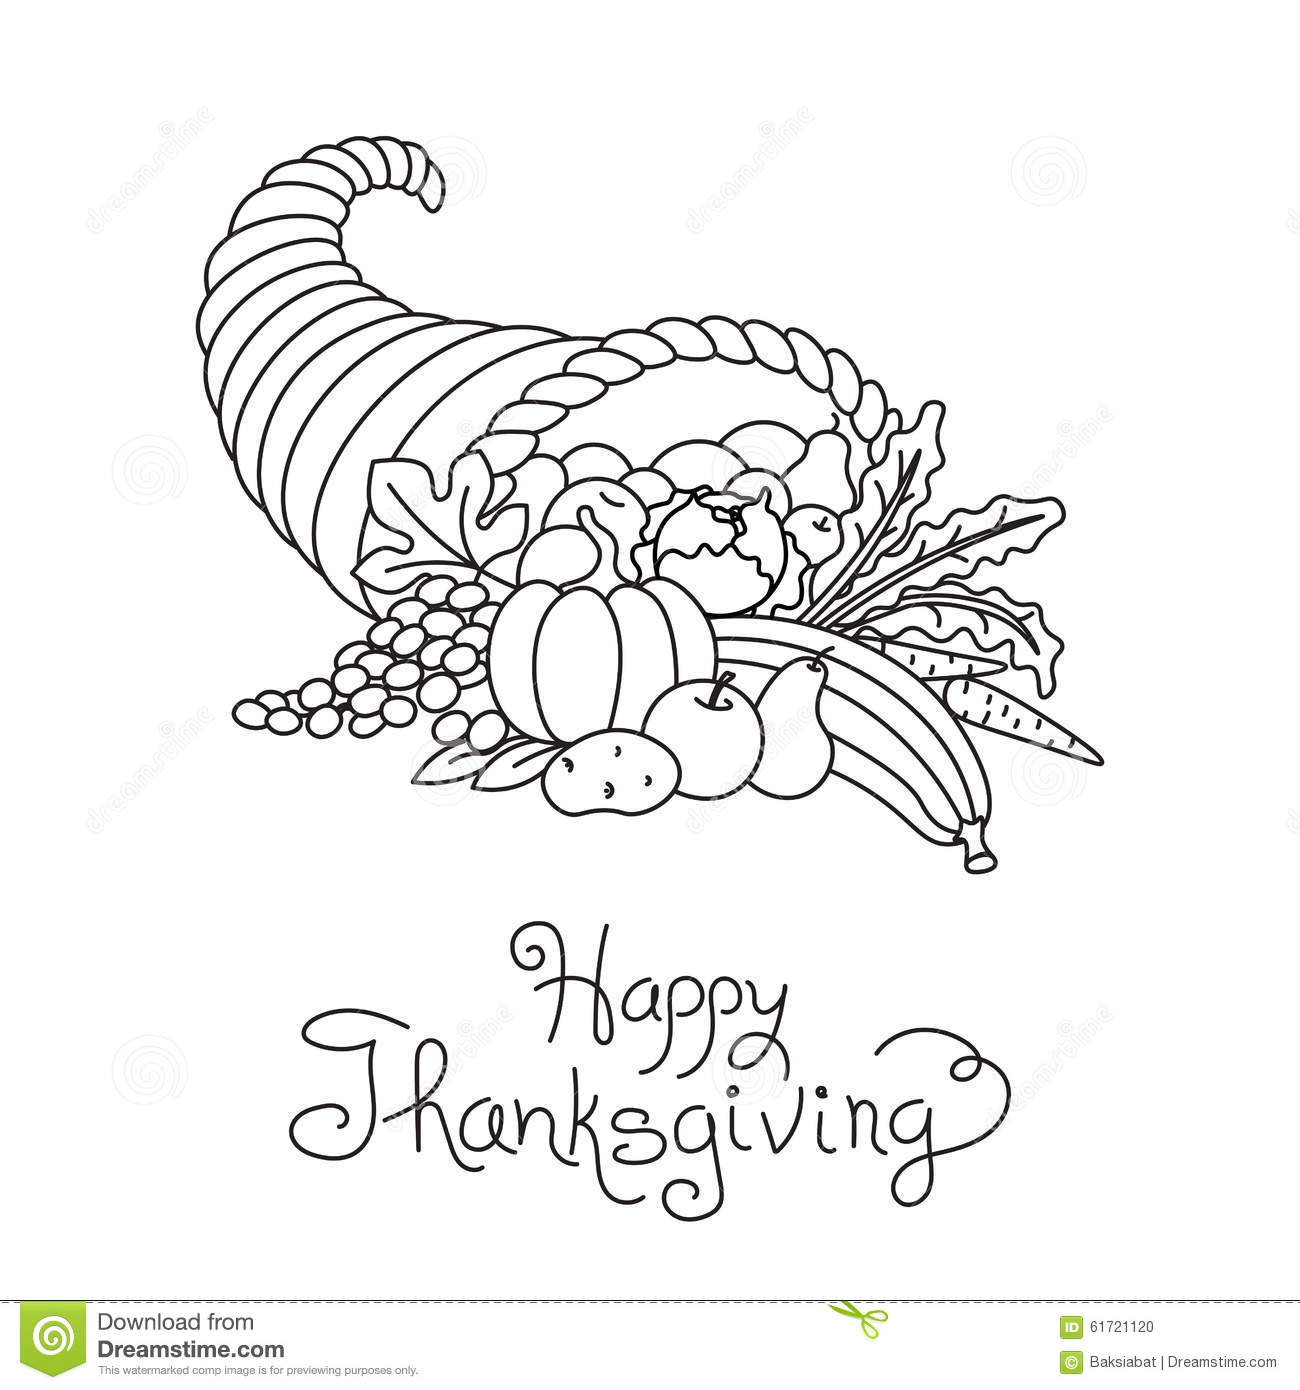 Drawing Vertical Lines In Html : Vector thanksgiving line art pumkins vertical cartoon